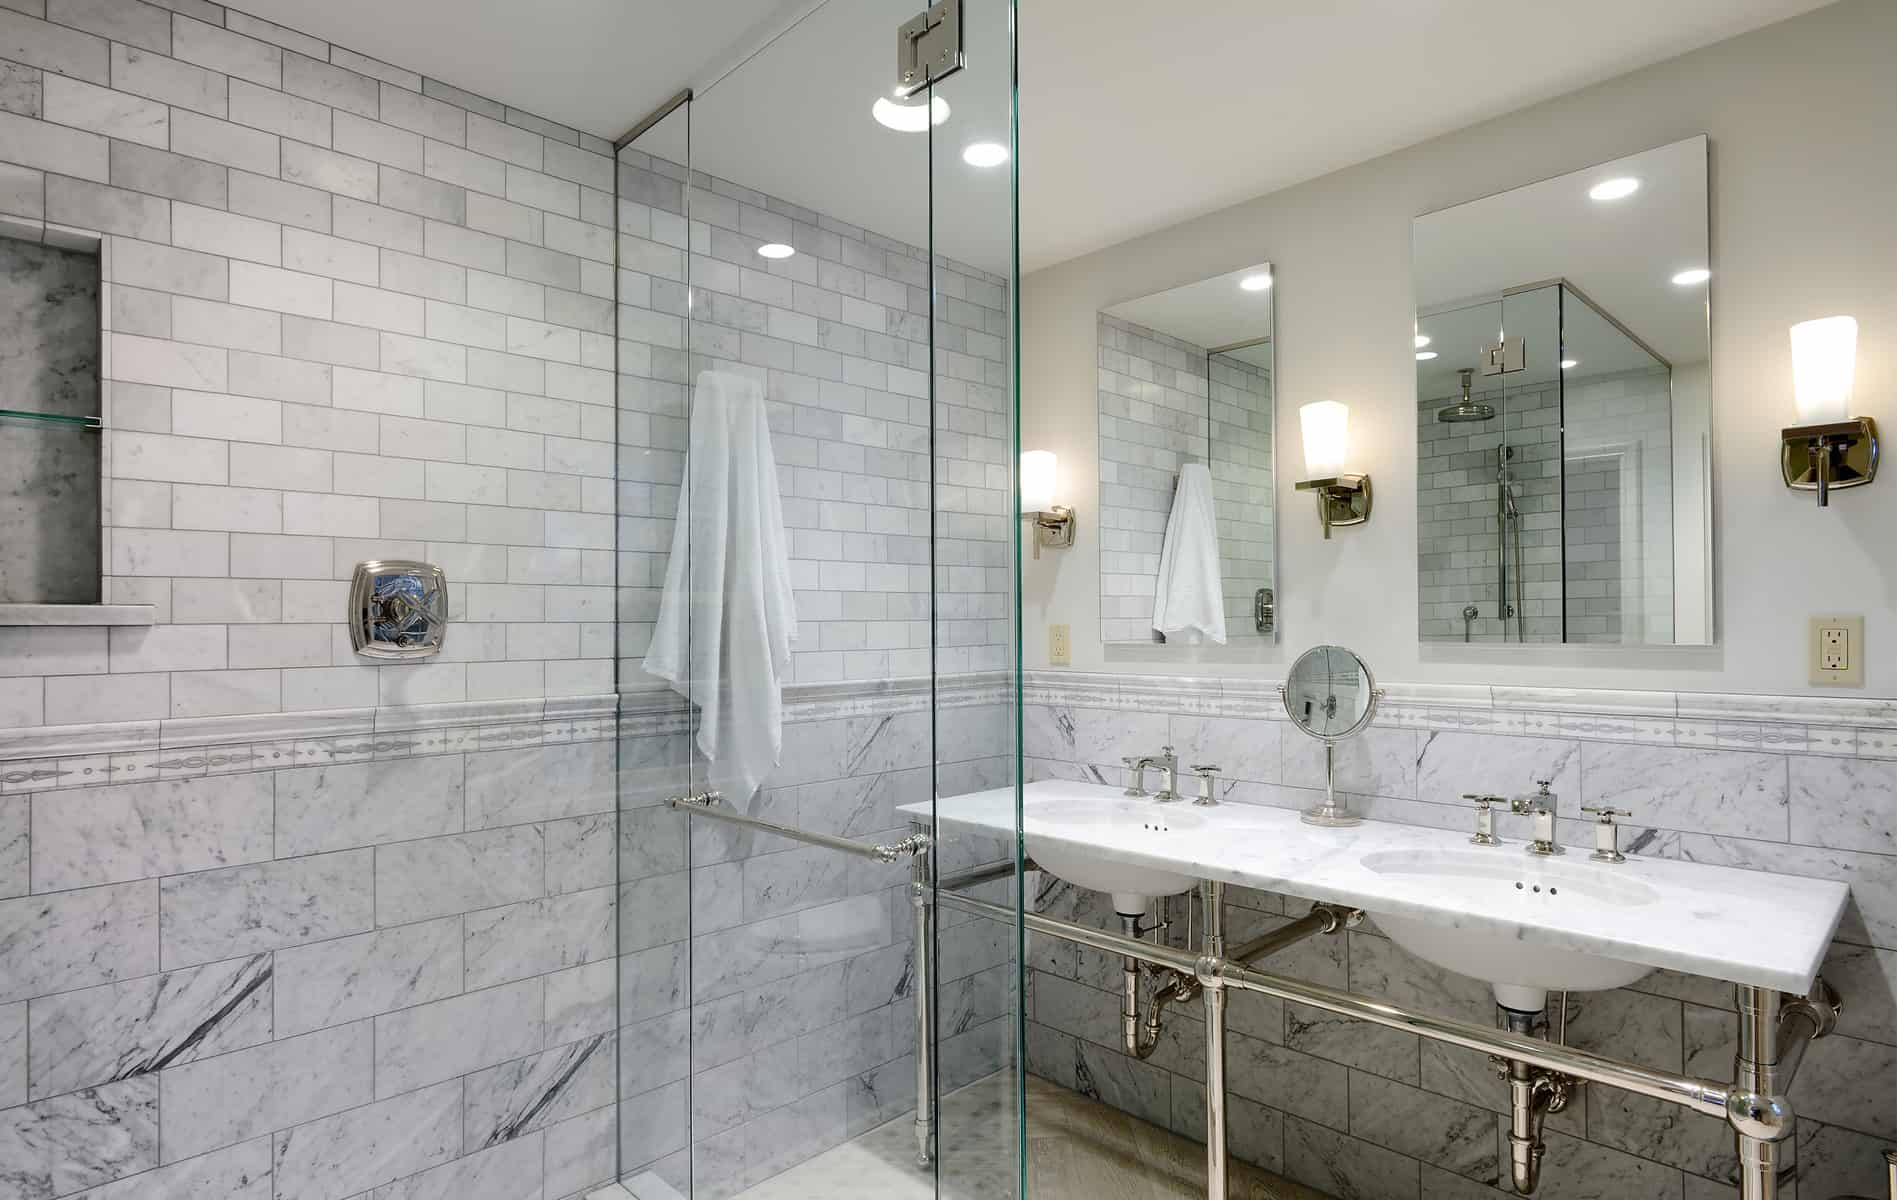 7 smart strategies for bathroom remodeling biederman Remodeling your bathroom on a budget